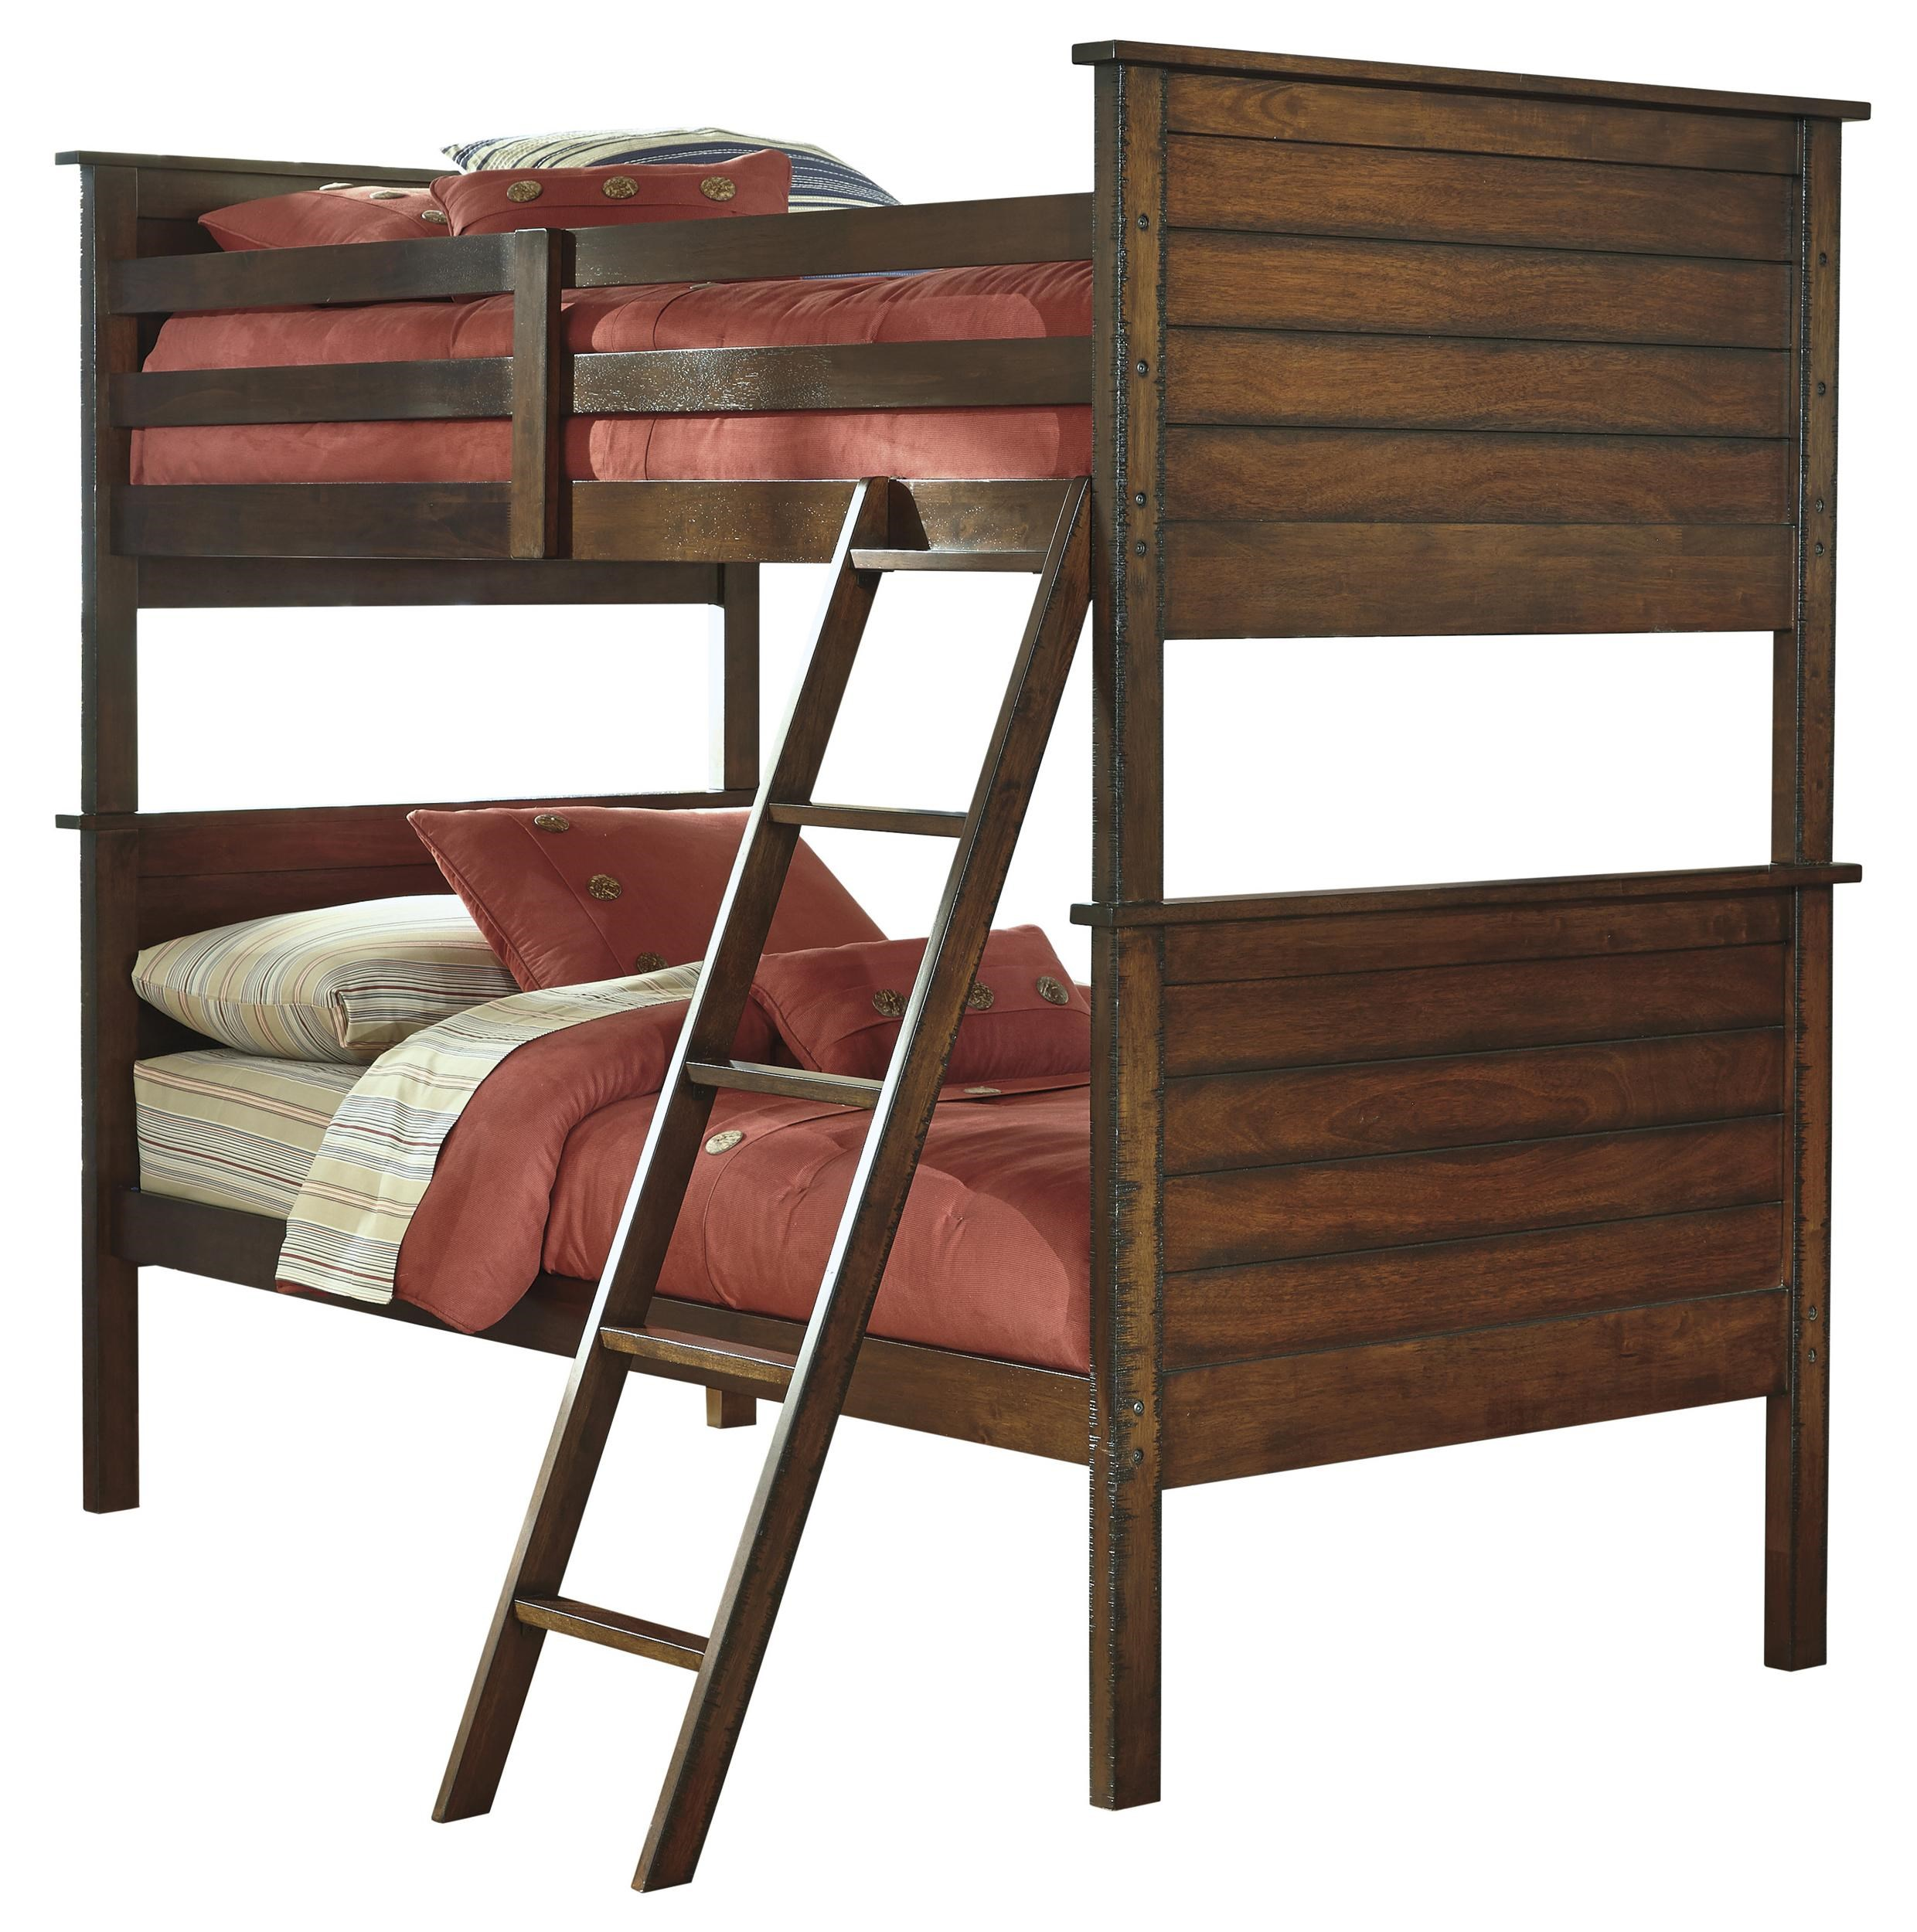 Signature Design by Ashley Ladiville Rustic Twin Twin Bunk